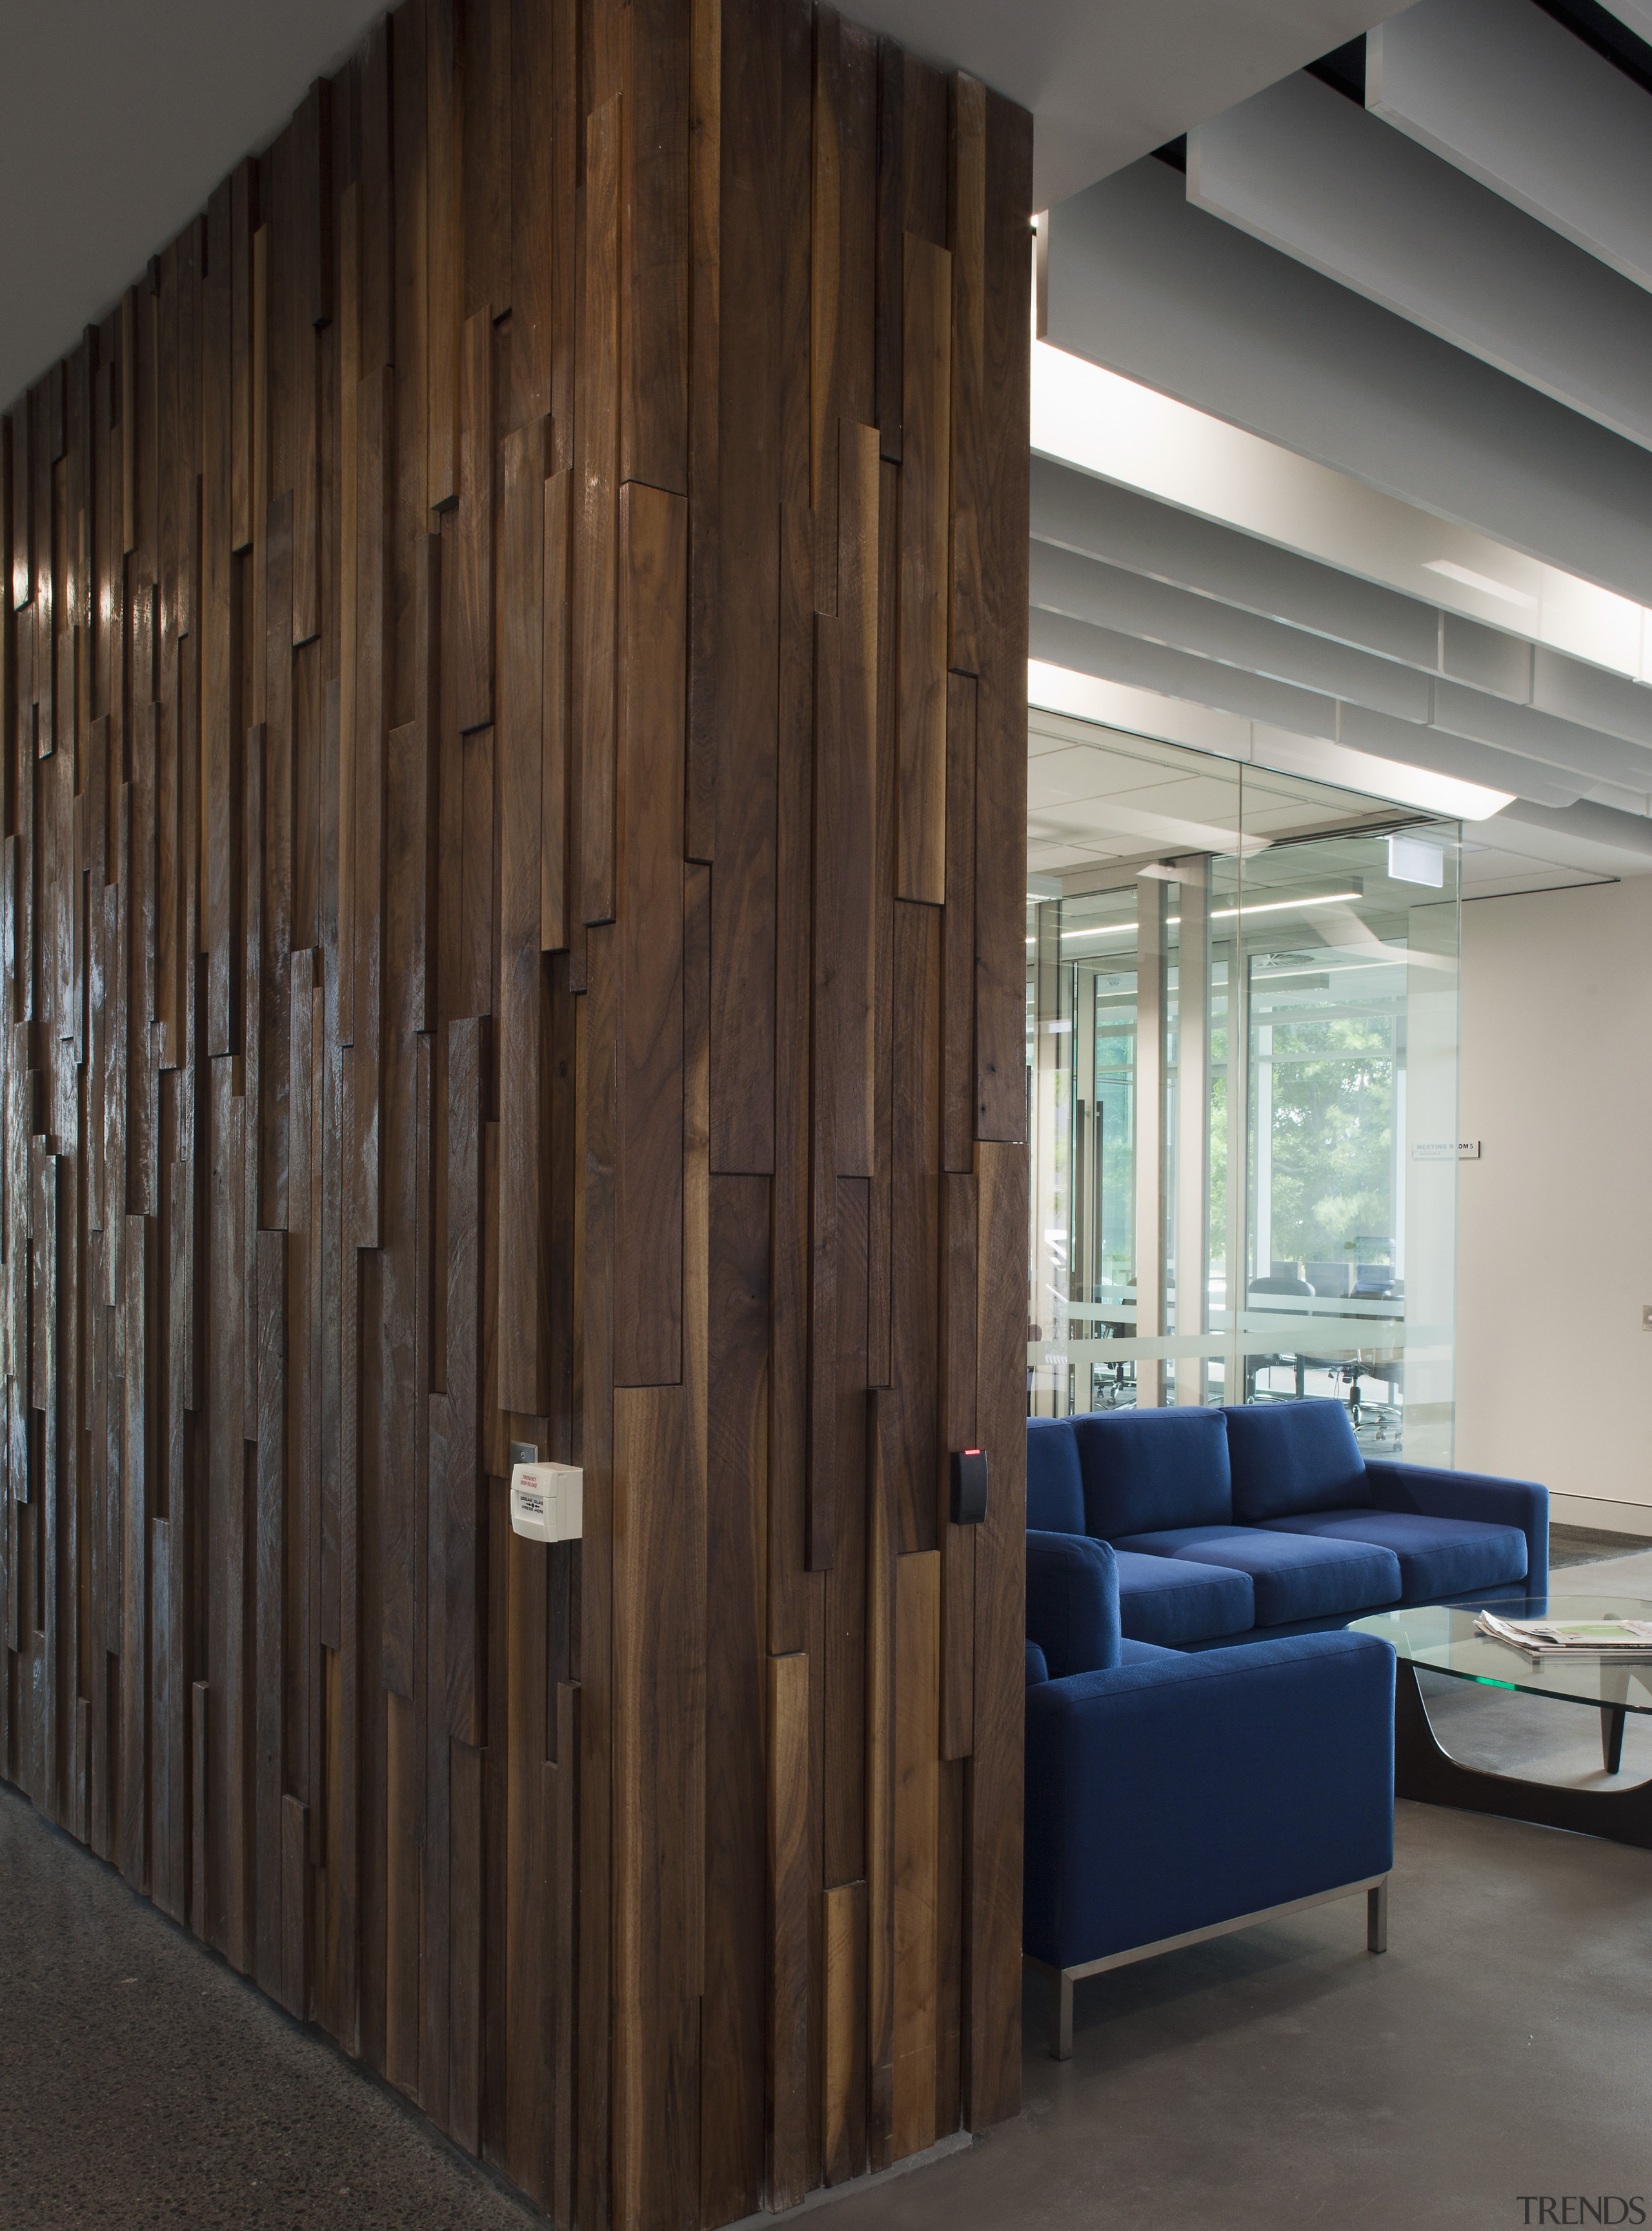 This boutique office development on a brownfields site architecture, furniture, interior design, wall, wood, brown, gray